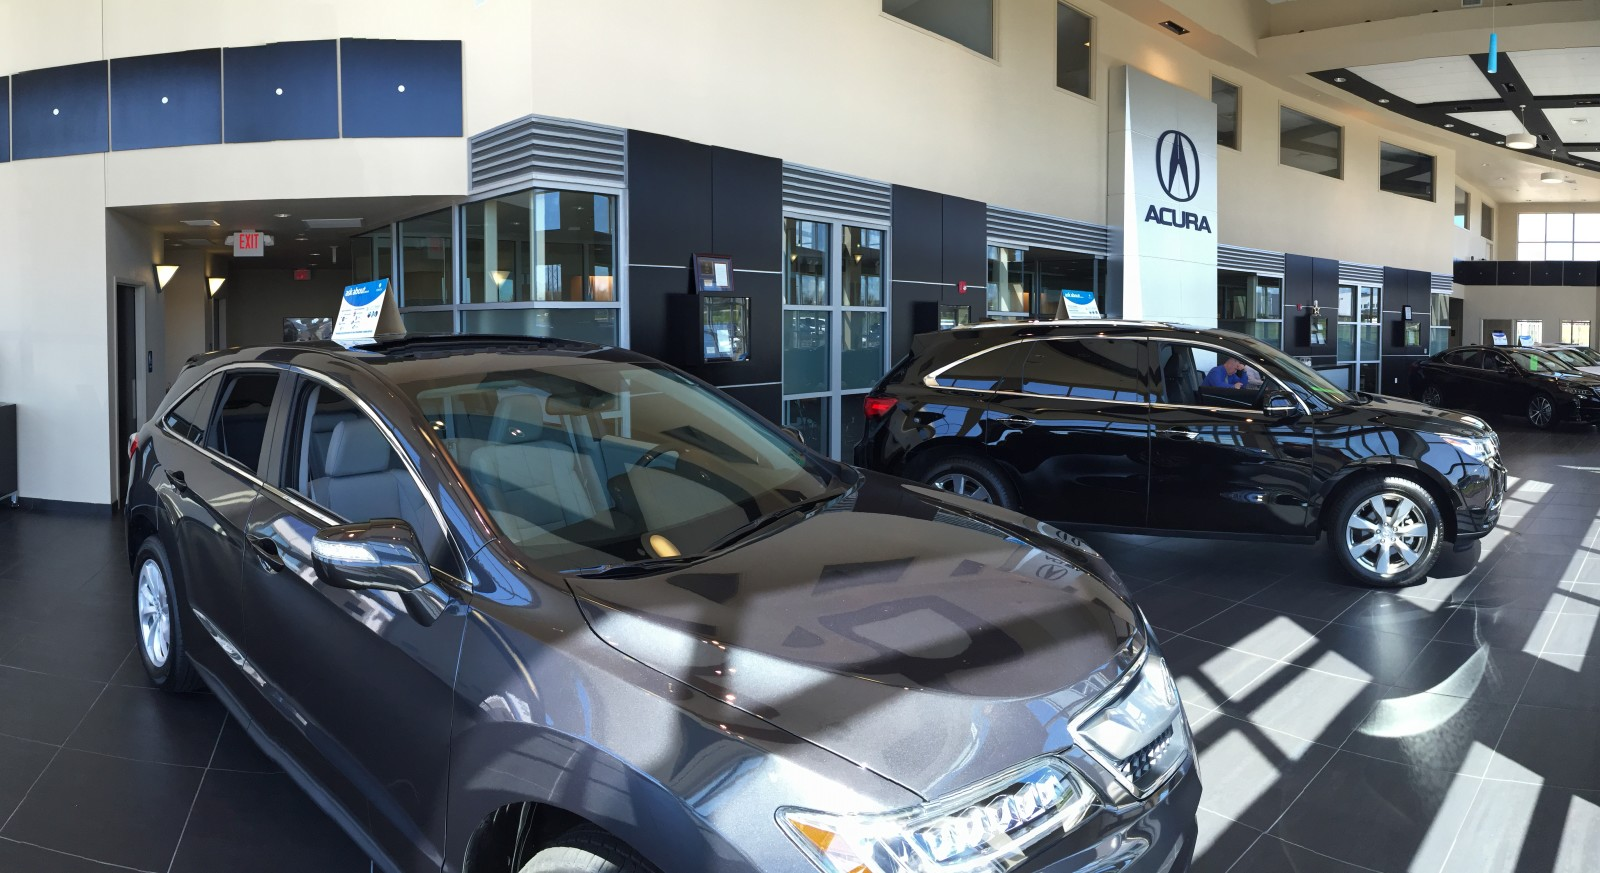 Acura Of Limerick New Used Acura Cars Limerick PA - Acura dealers in pa